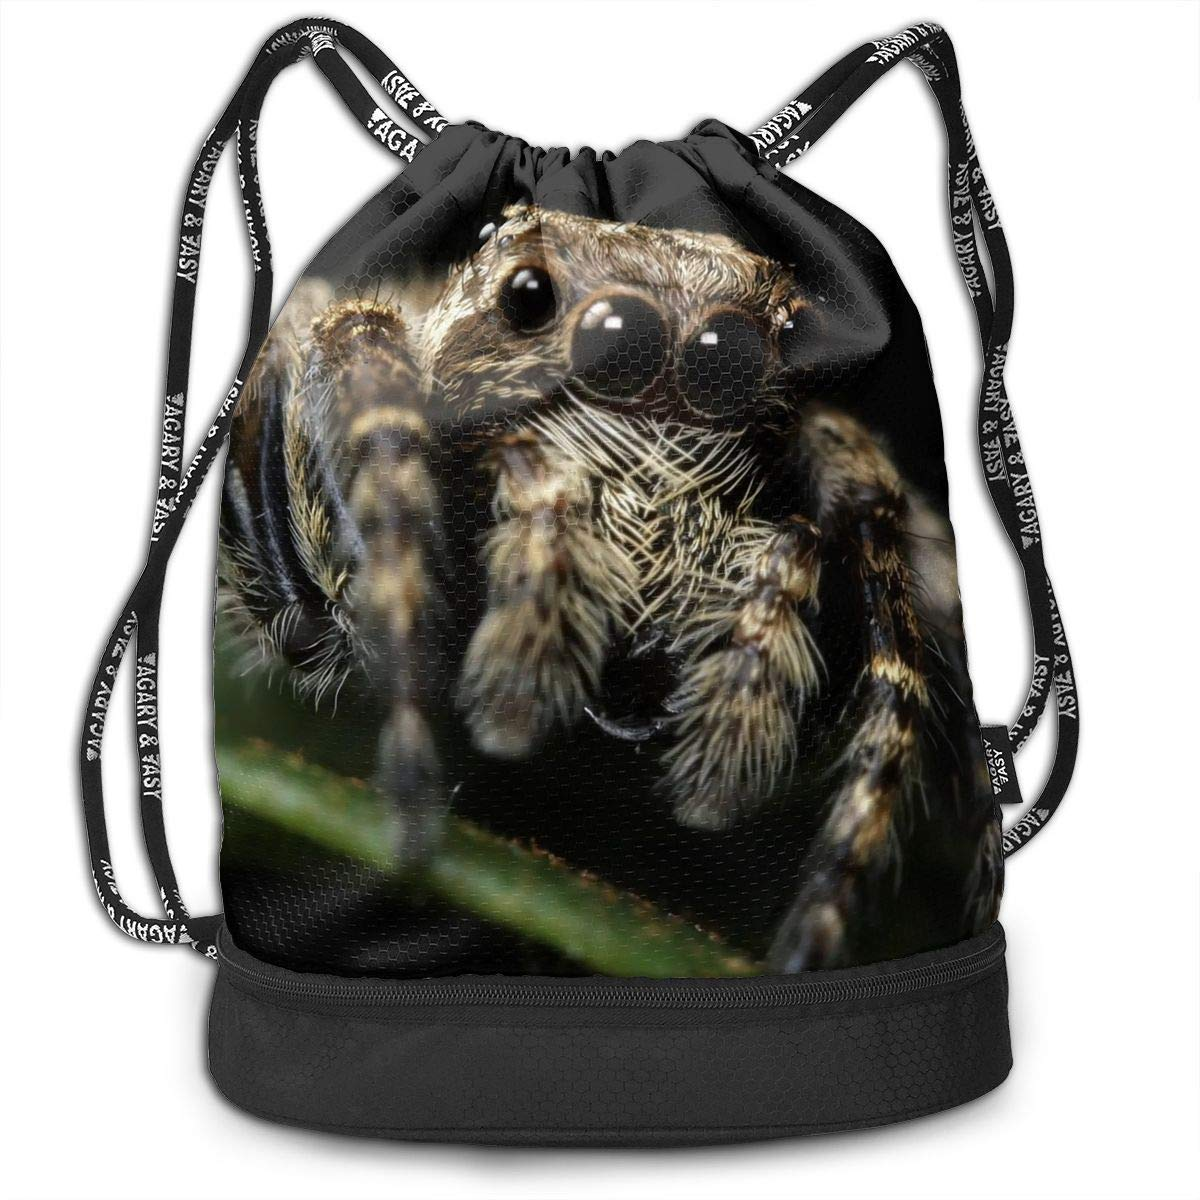 Jxrodekz Multifunctional Bundle Backpack - Adorable ider Insect Illustration 3D Print Drawstring Backpack - Portable Shoulder Bags Travel ort Gym Bag - Yoga Runner ypack Shoe Bags